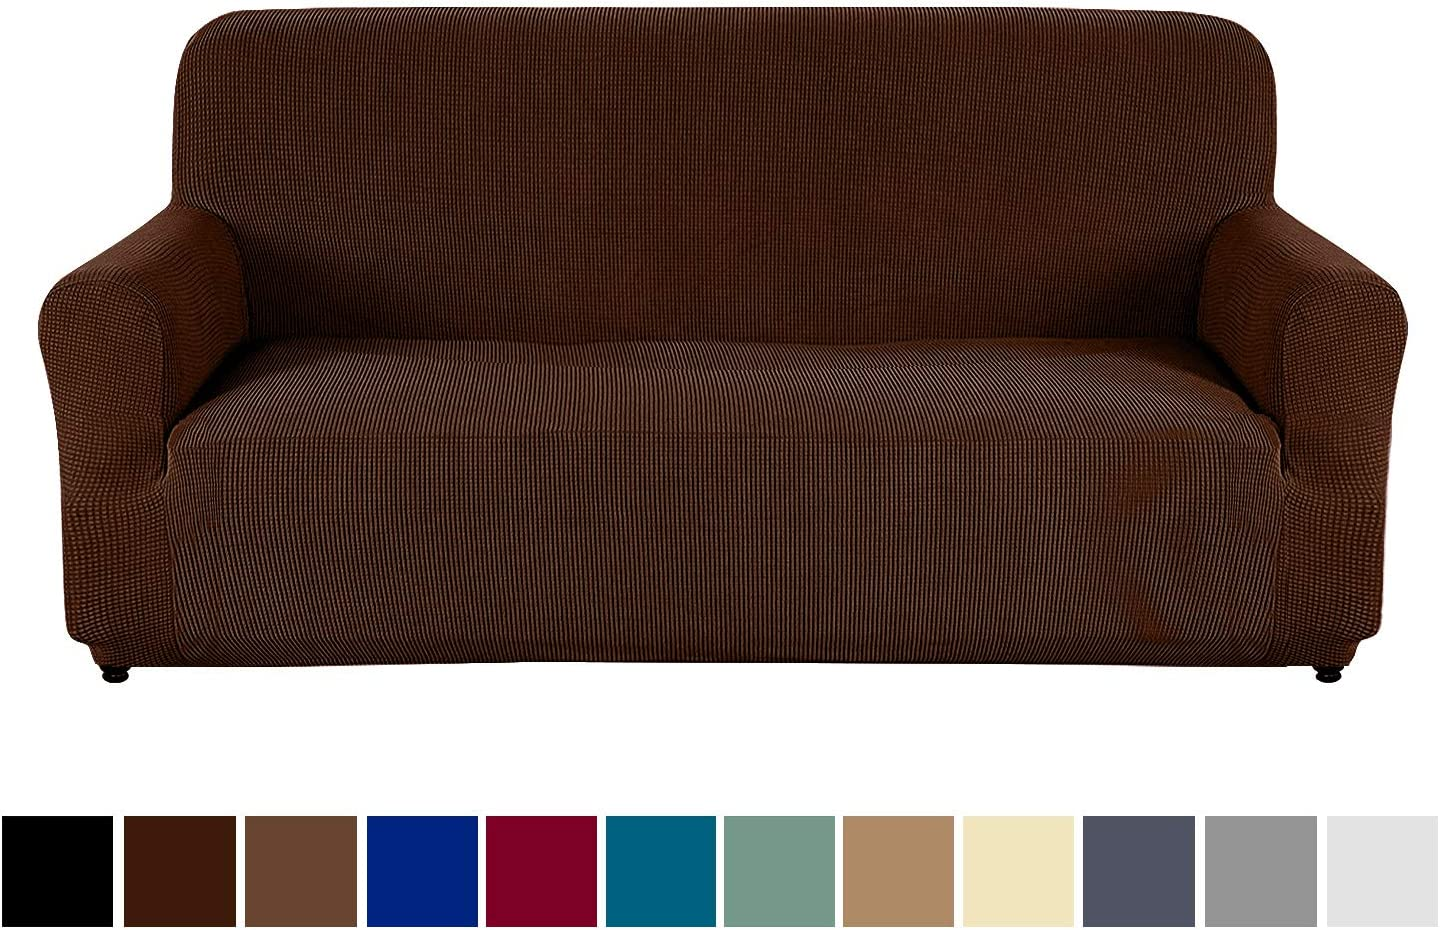 AUJOY Couch Cover Stretch 1-Piece Sofa Slipcover for 3 Cushion Couch Jacquard Spandex Fabric Furniture Protector with Anti-Slip Foams (Sofa, Dark Coffee)